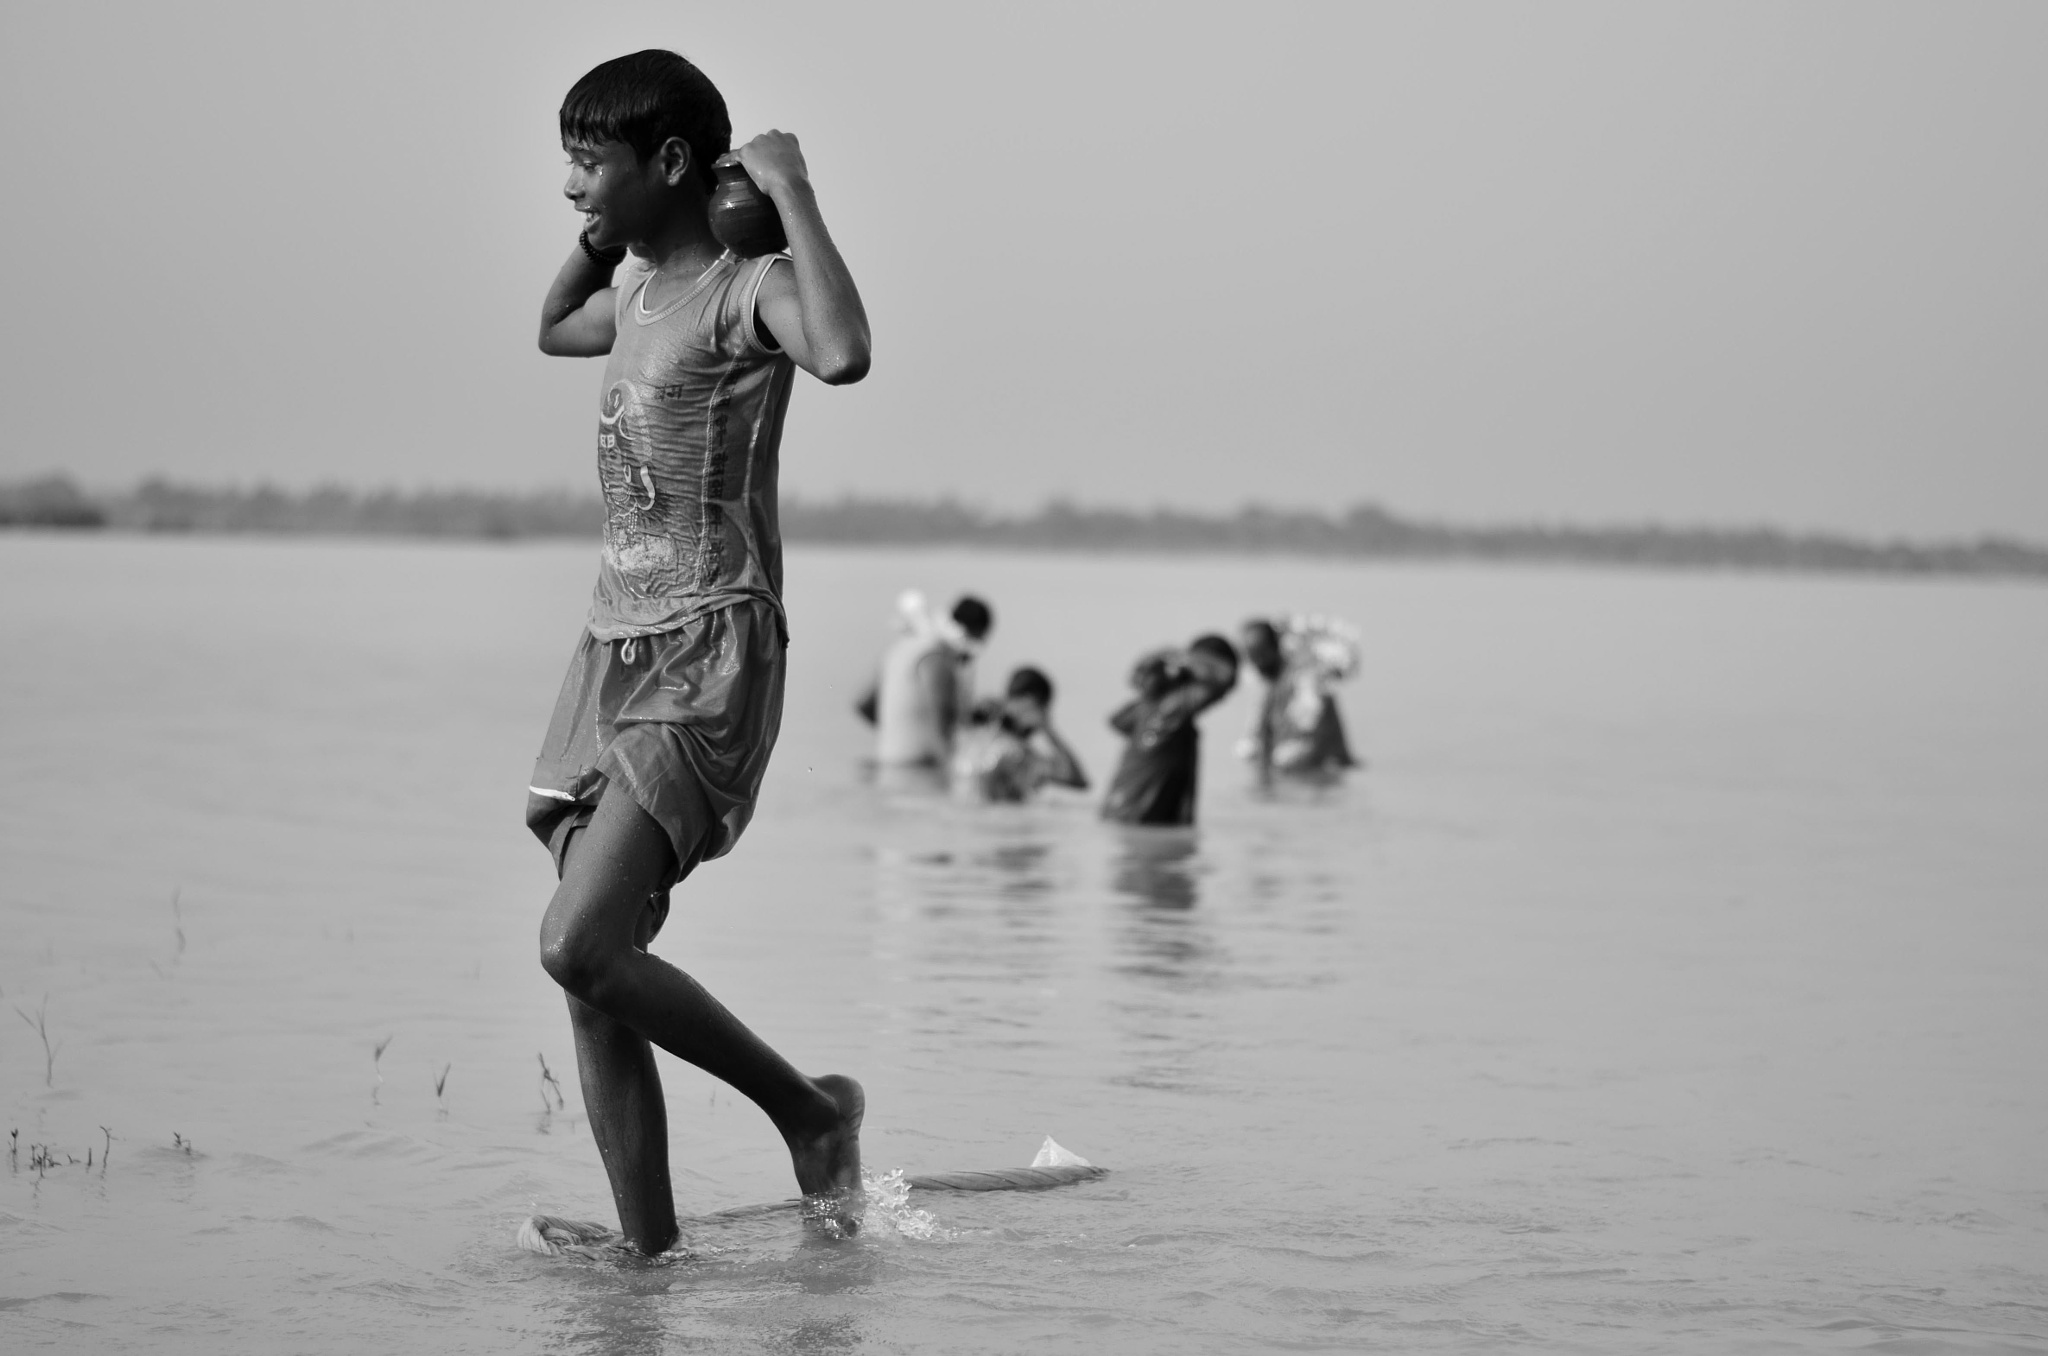 Carry water this summer !! by Satyajeet Ojha